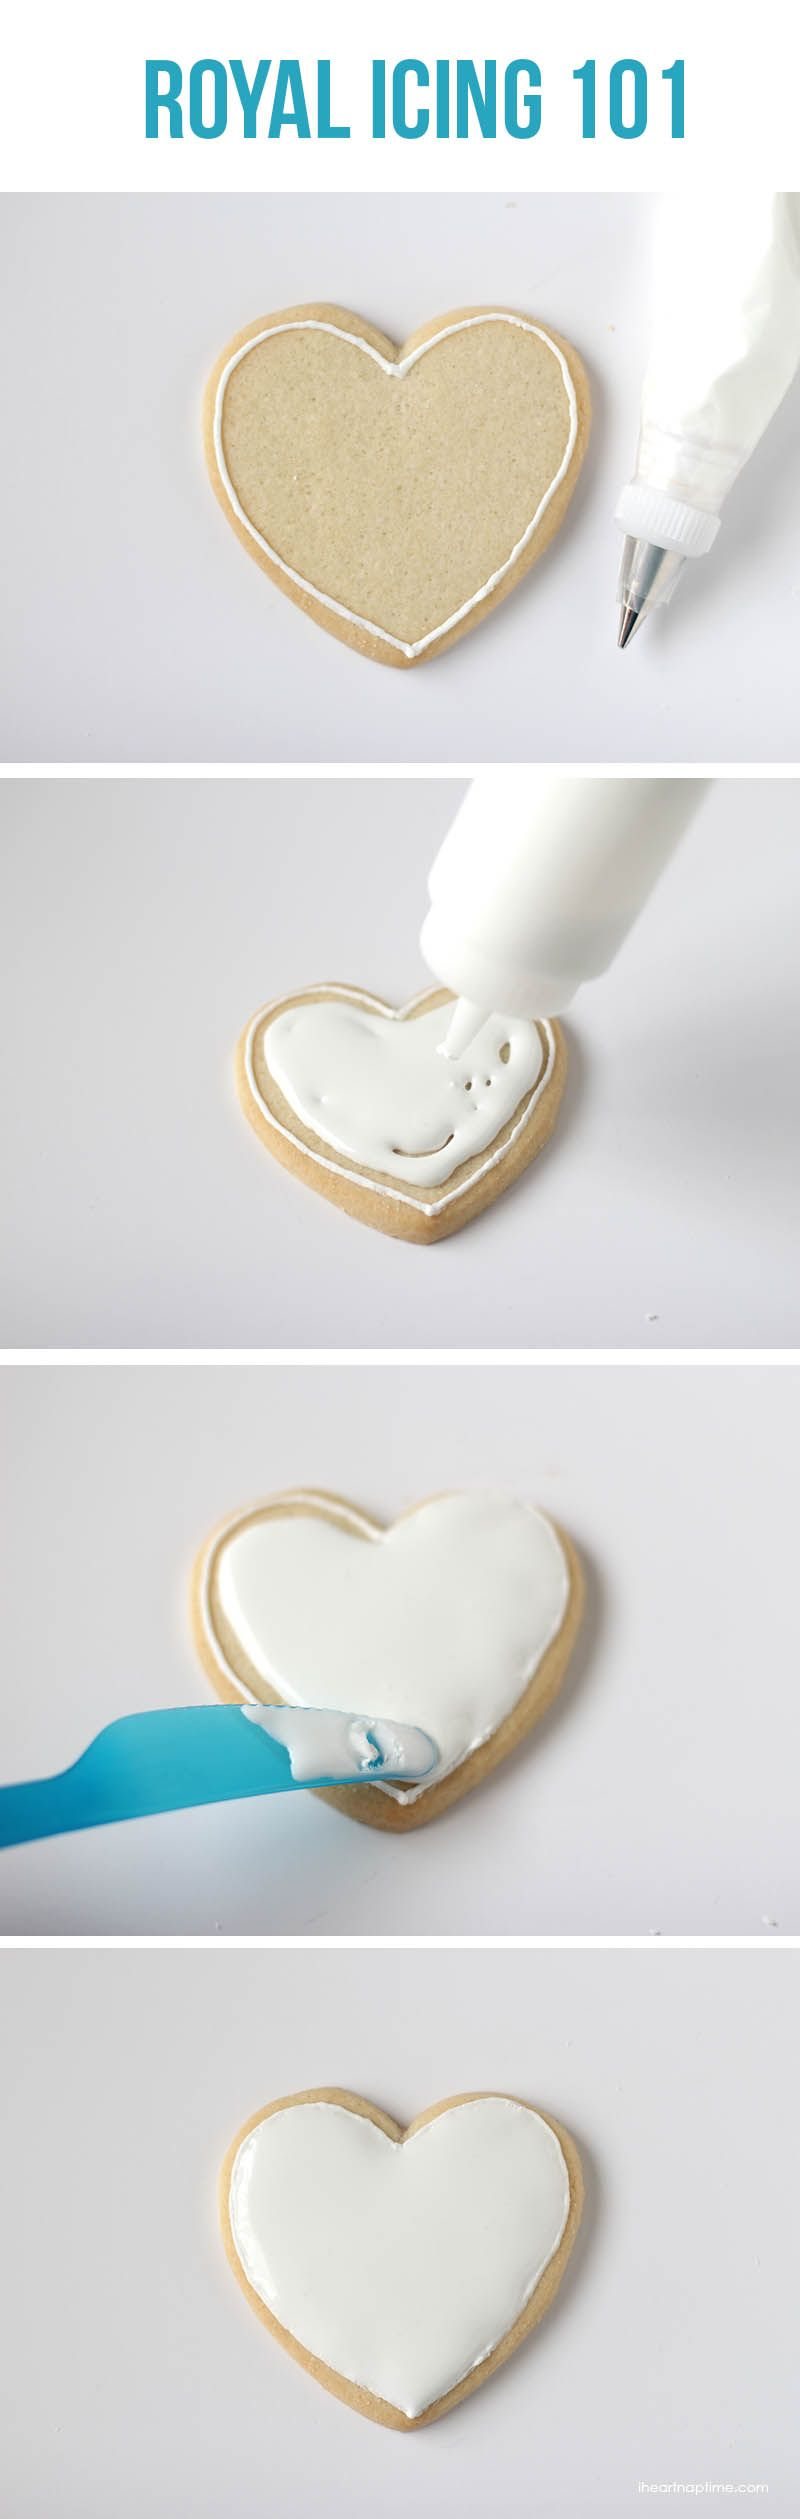 Royal Icing Recipe Food Art Pinterest Cookies Icing And